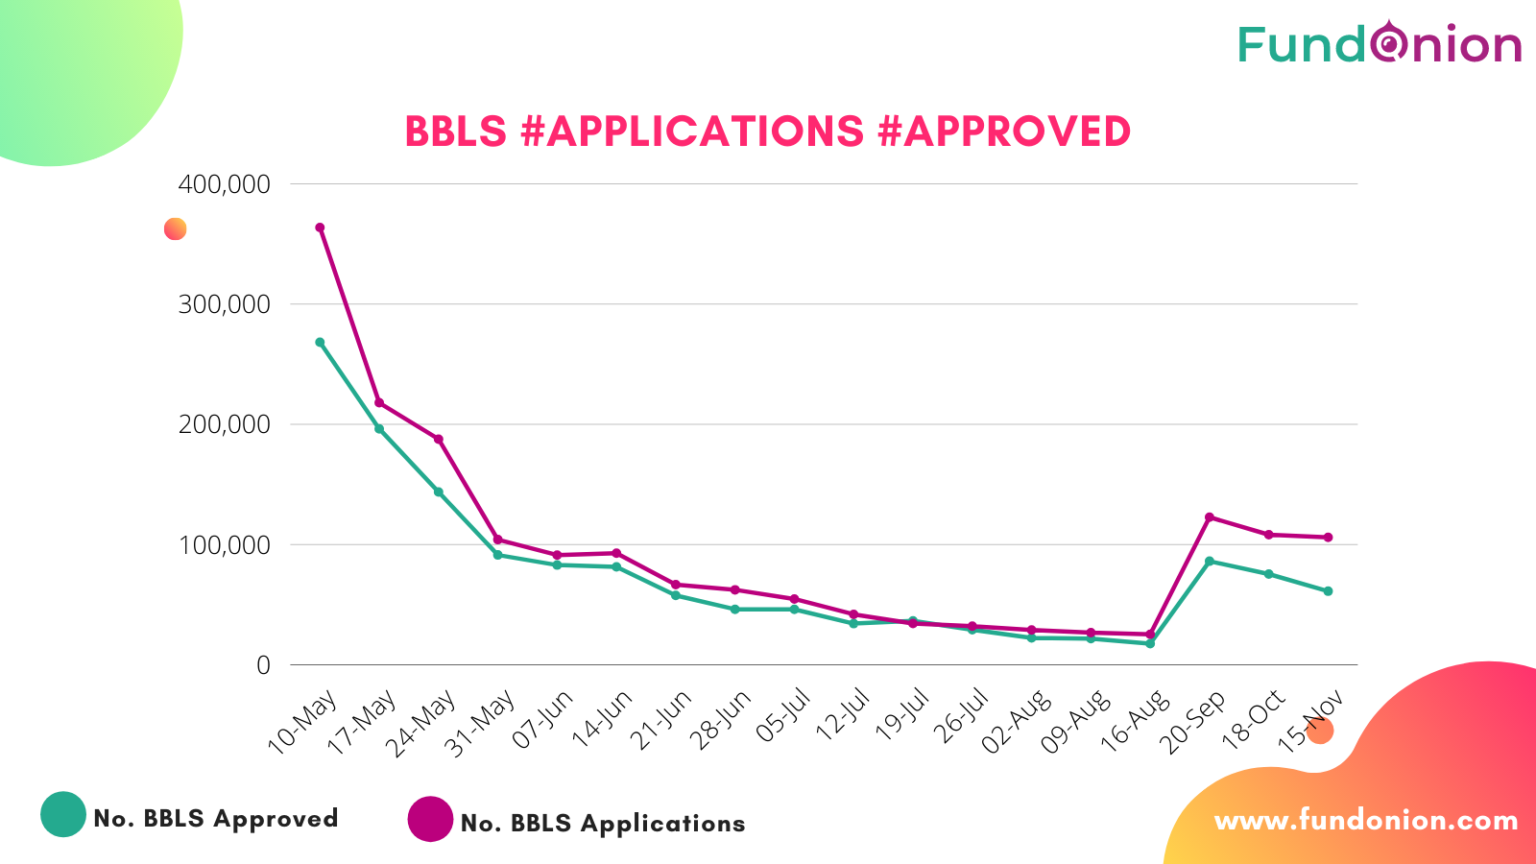 BBLS applications approval